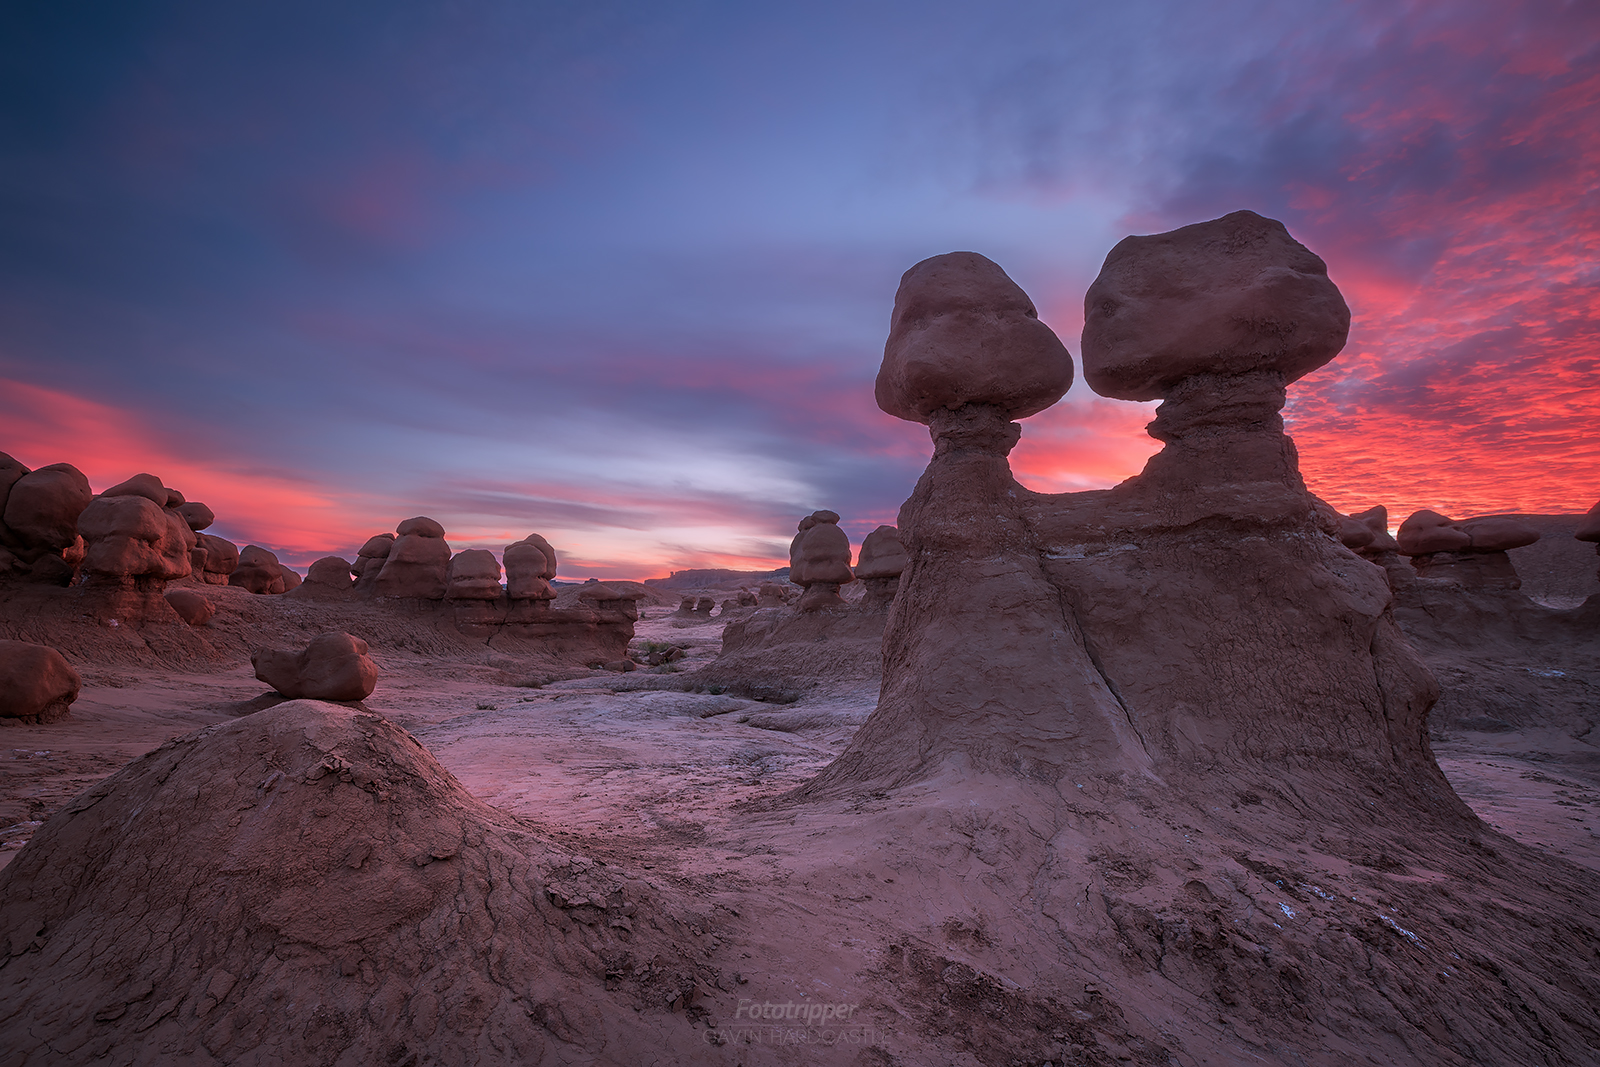 Goblin Valley Landscape Photography with Gavin Hardcastle